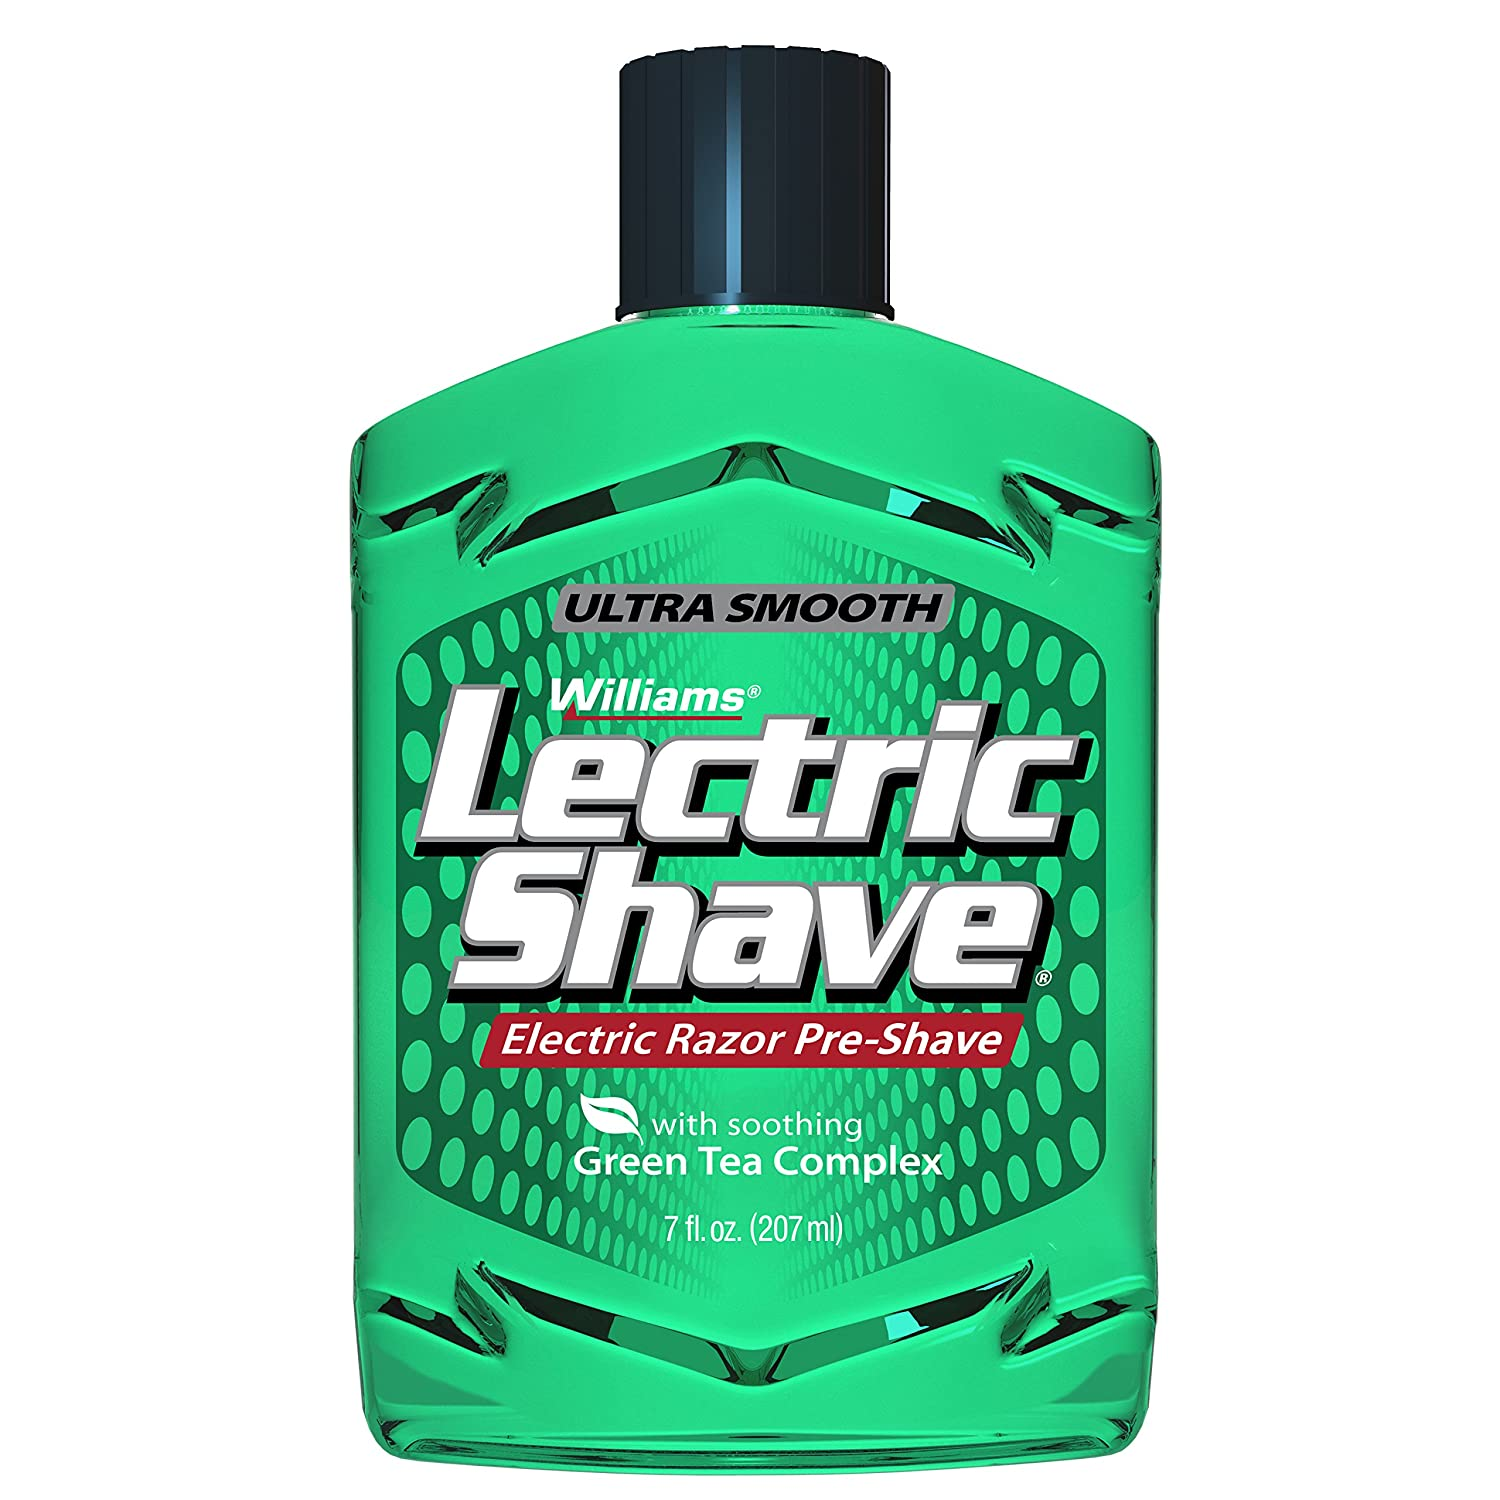 Williams Lectric Shave, Electric Razor Pre-Shave 7 Ounce